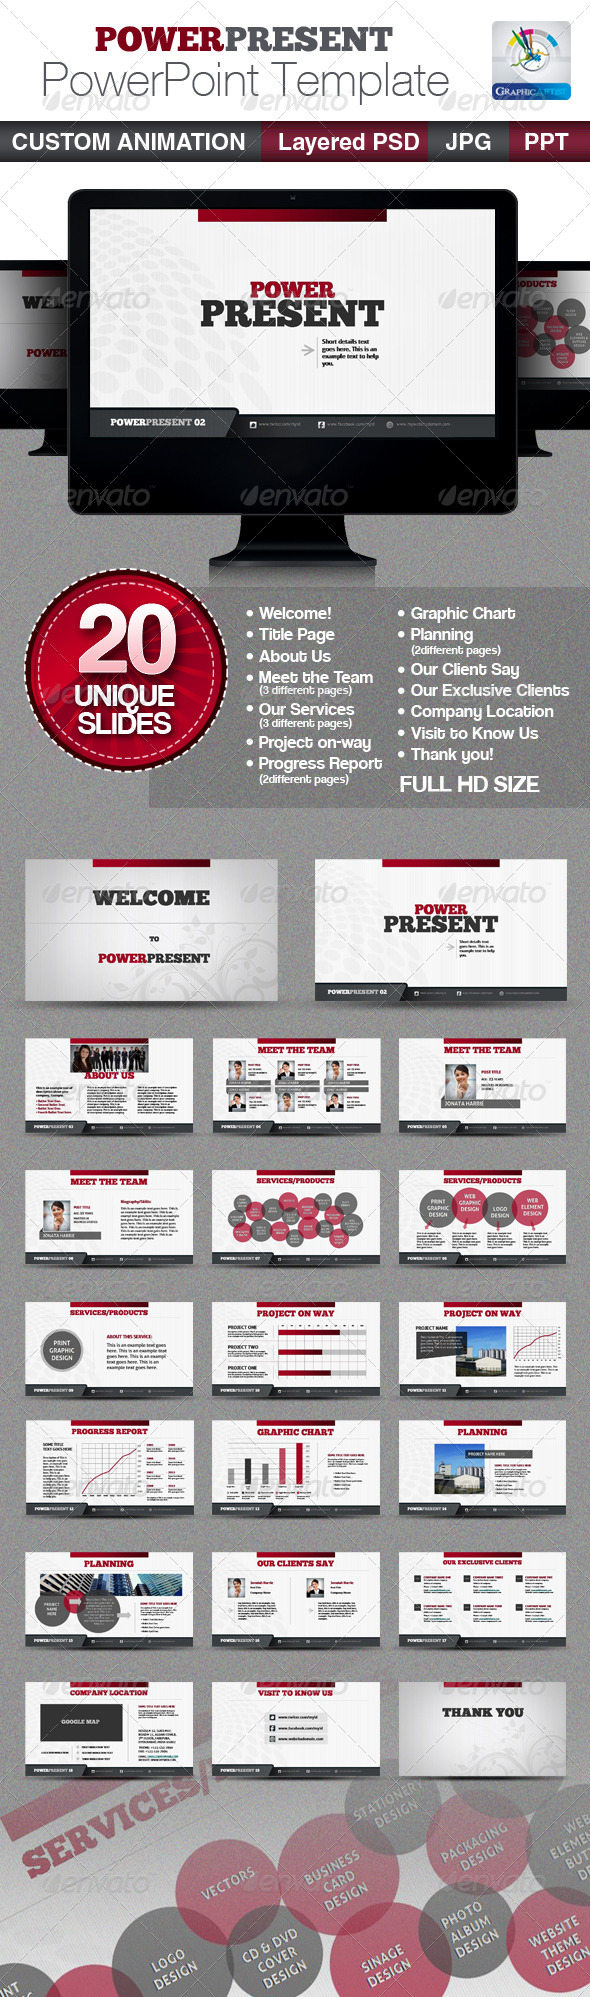 PowerPresent PowerPoint Templates GraphicRiver - Presentation Templates -  Powerpoint Templates 2524562